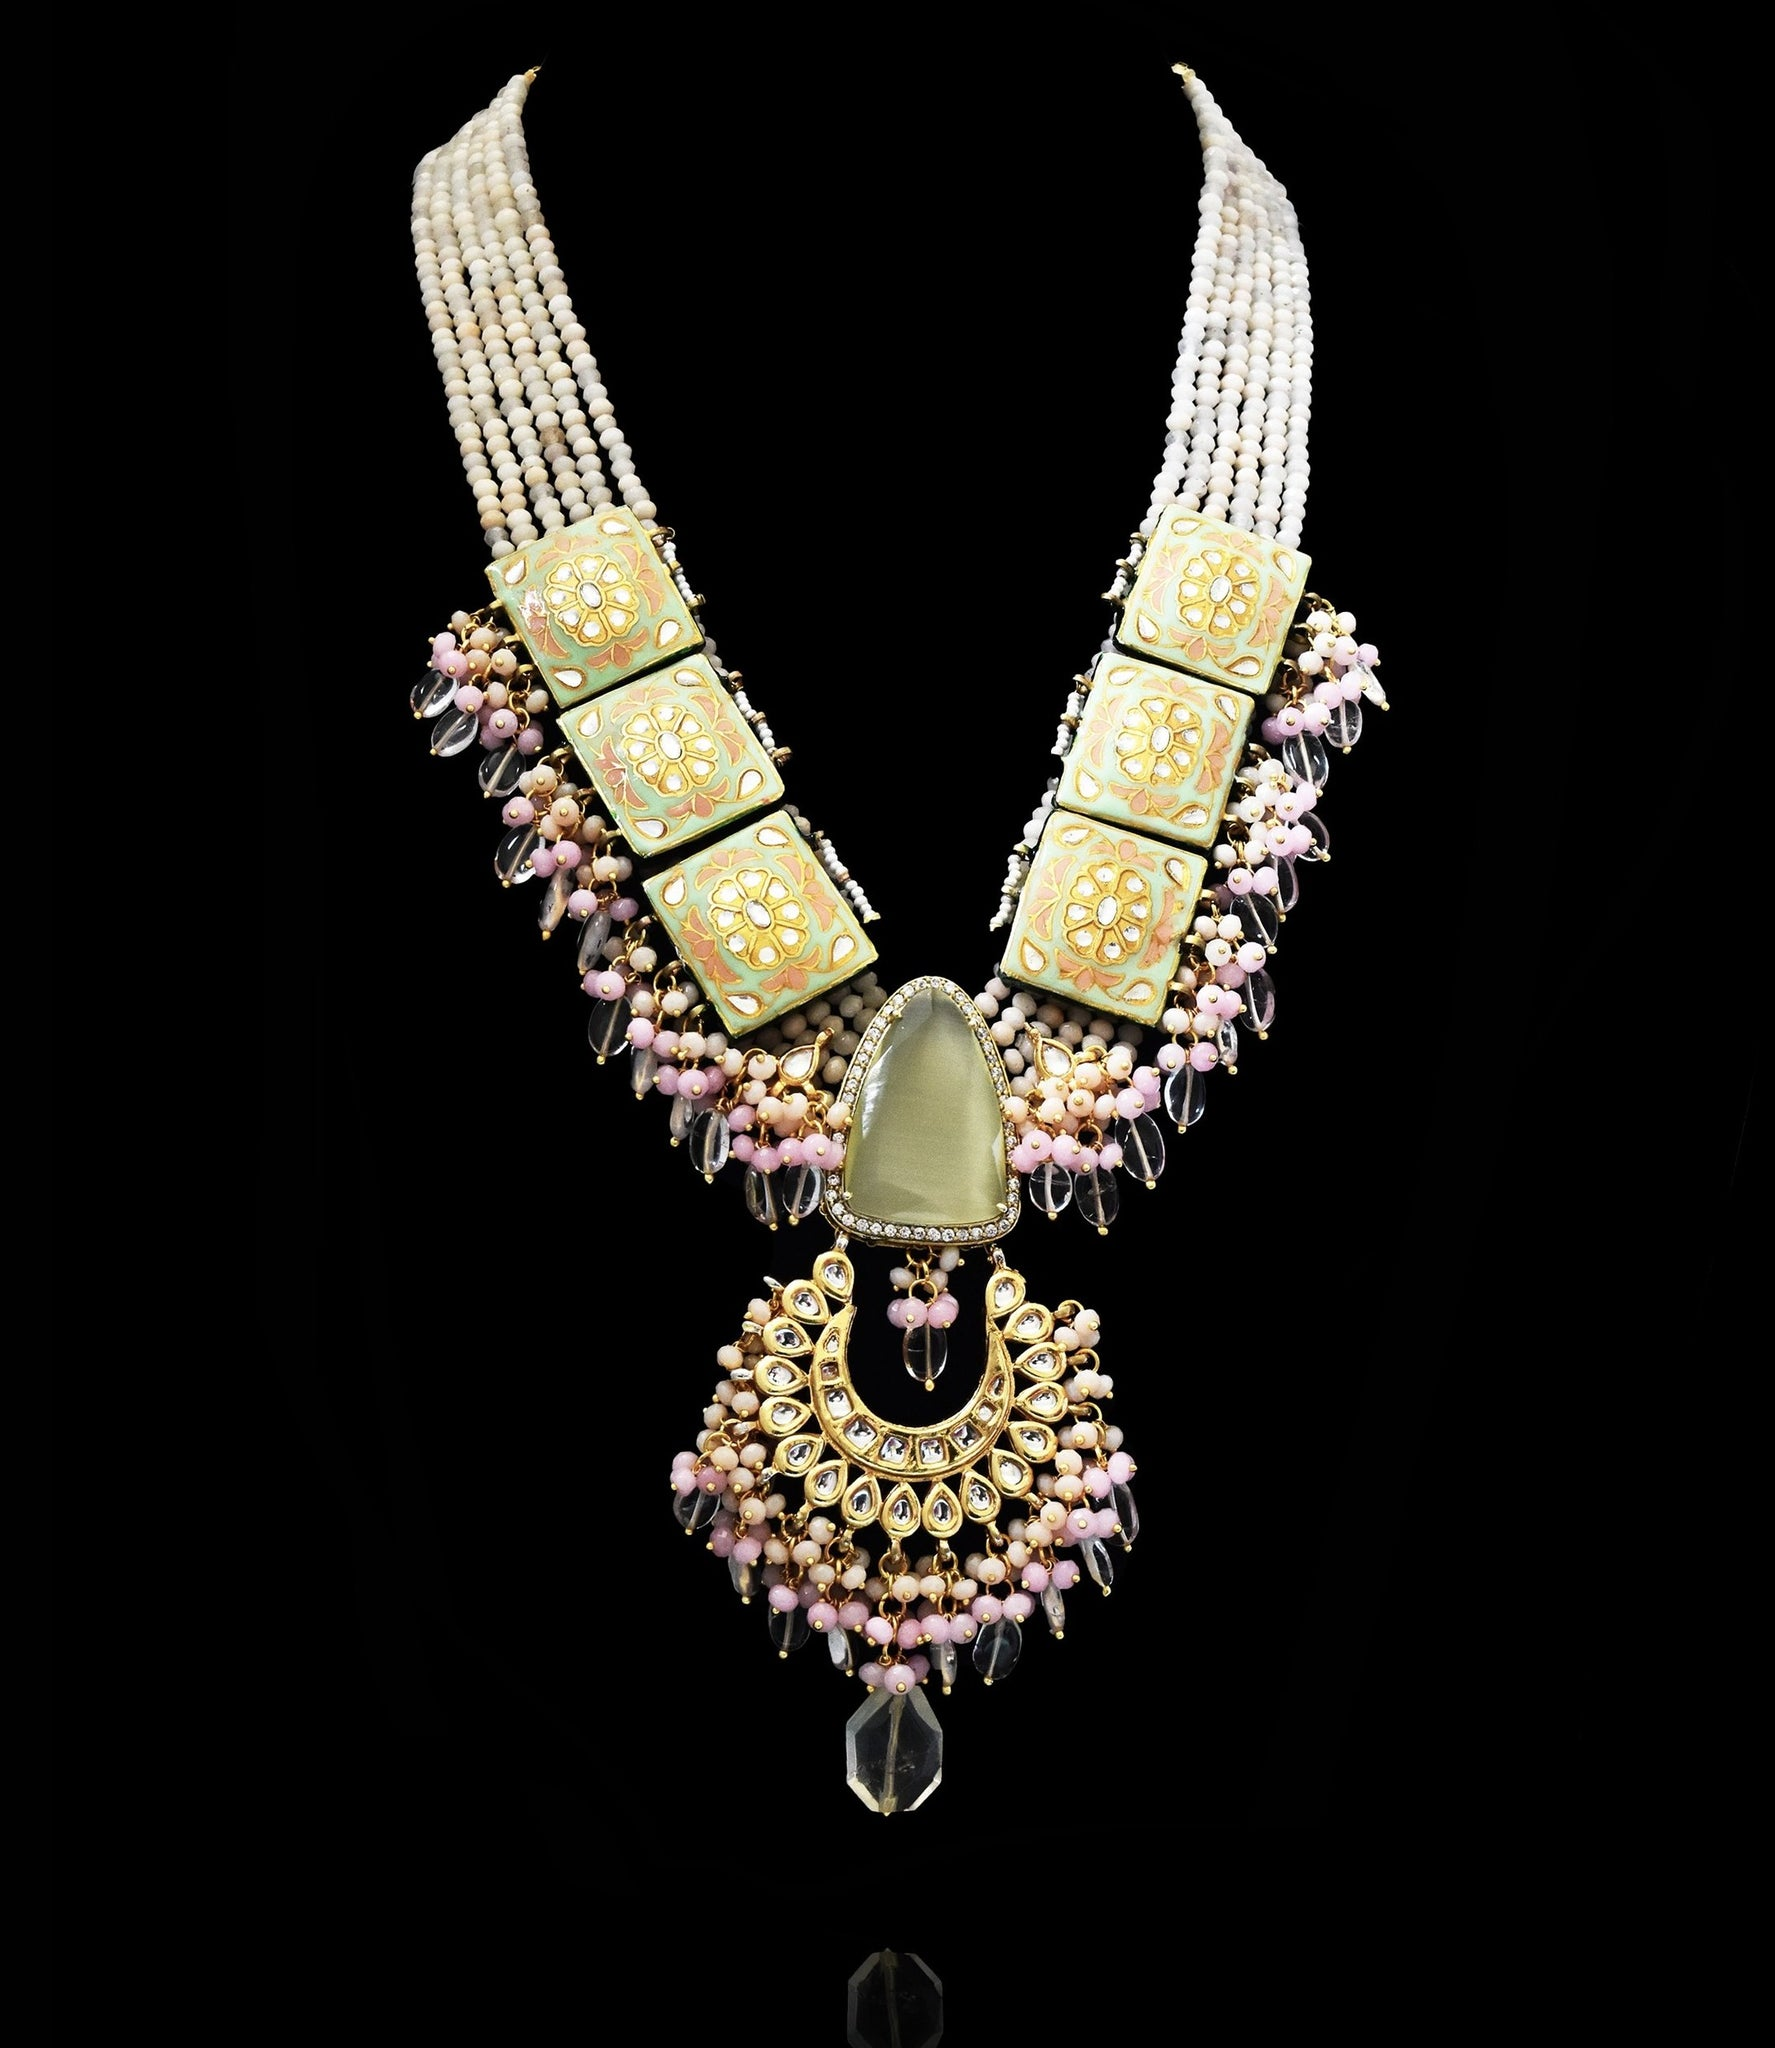 Farzana Handpainted Necklace Set - The Pashm